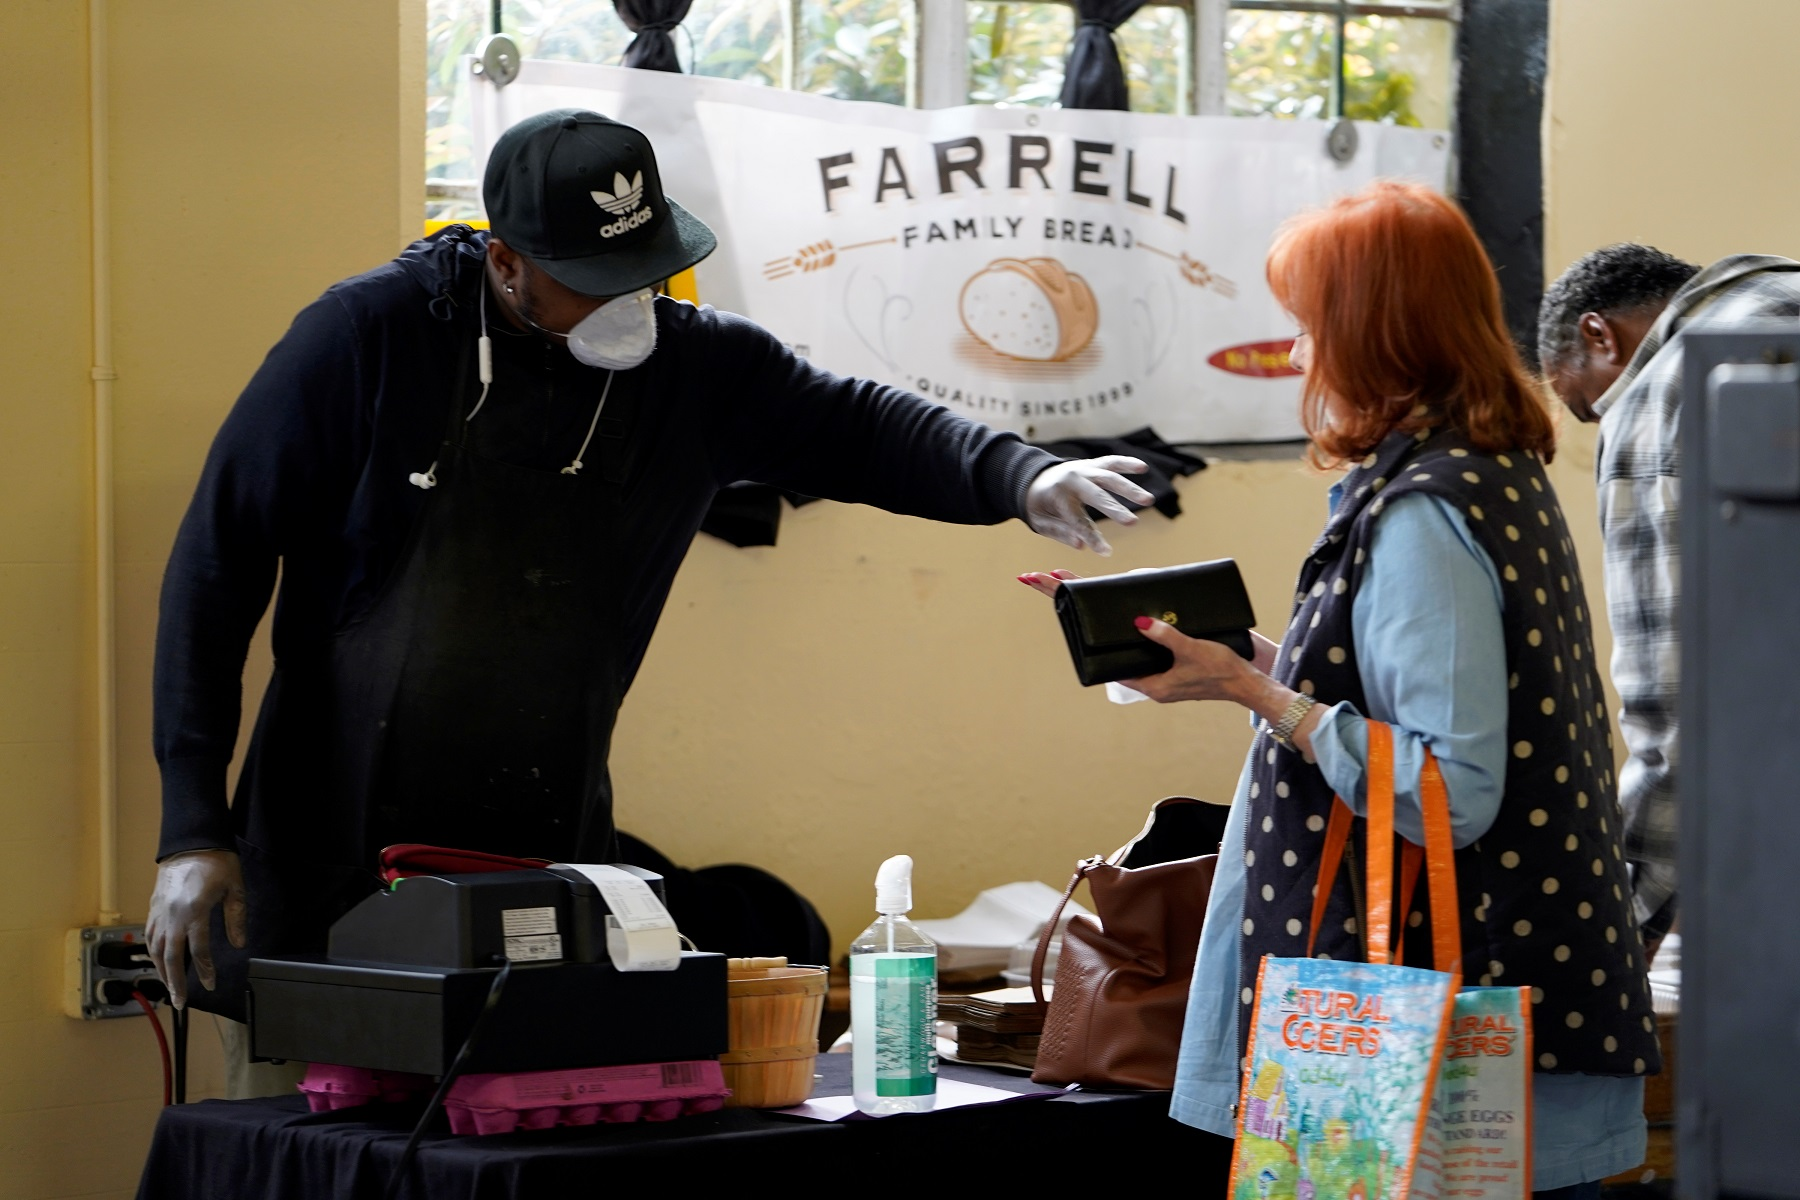 Vendor Cedric McIver gives change back to a customer at the Farmers Public Market in Oklahoma City, Oklahoma, U.S., March 21, 2020. Picture taken March 21, 2020. REUTERS/Nick Oxford